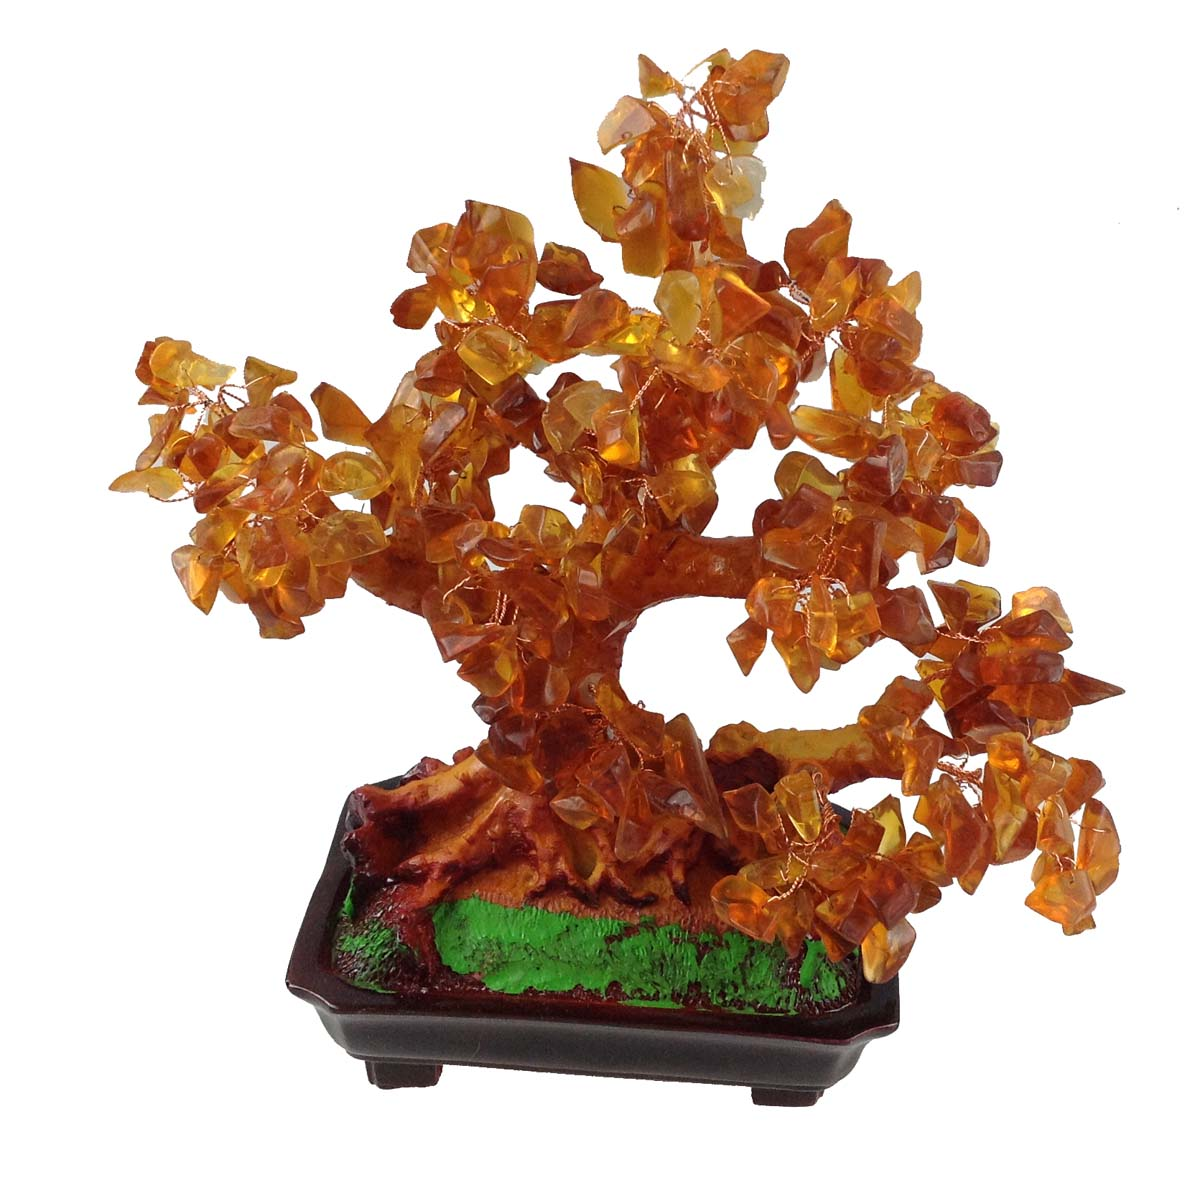 feng shui gl cksbaum 25 cm geldbaum bonsai pfennigbaum handarbeit stein braun ebay. Black Bedroom Furniture Sets. Home Design Ideas